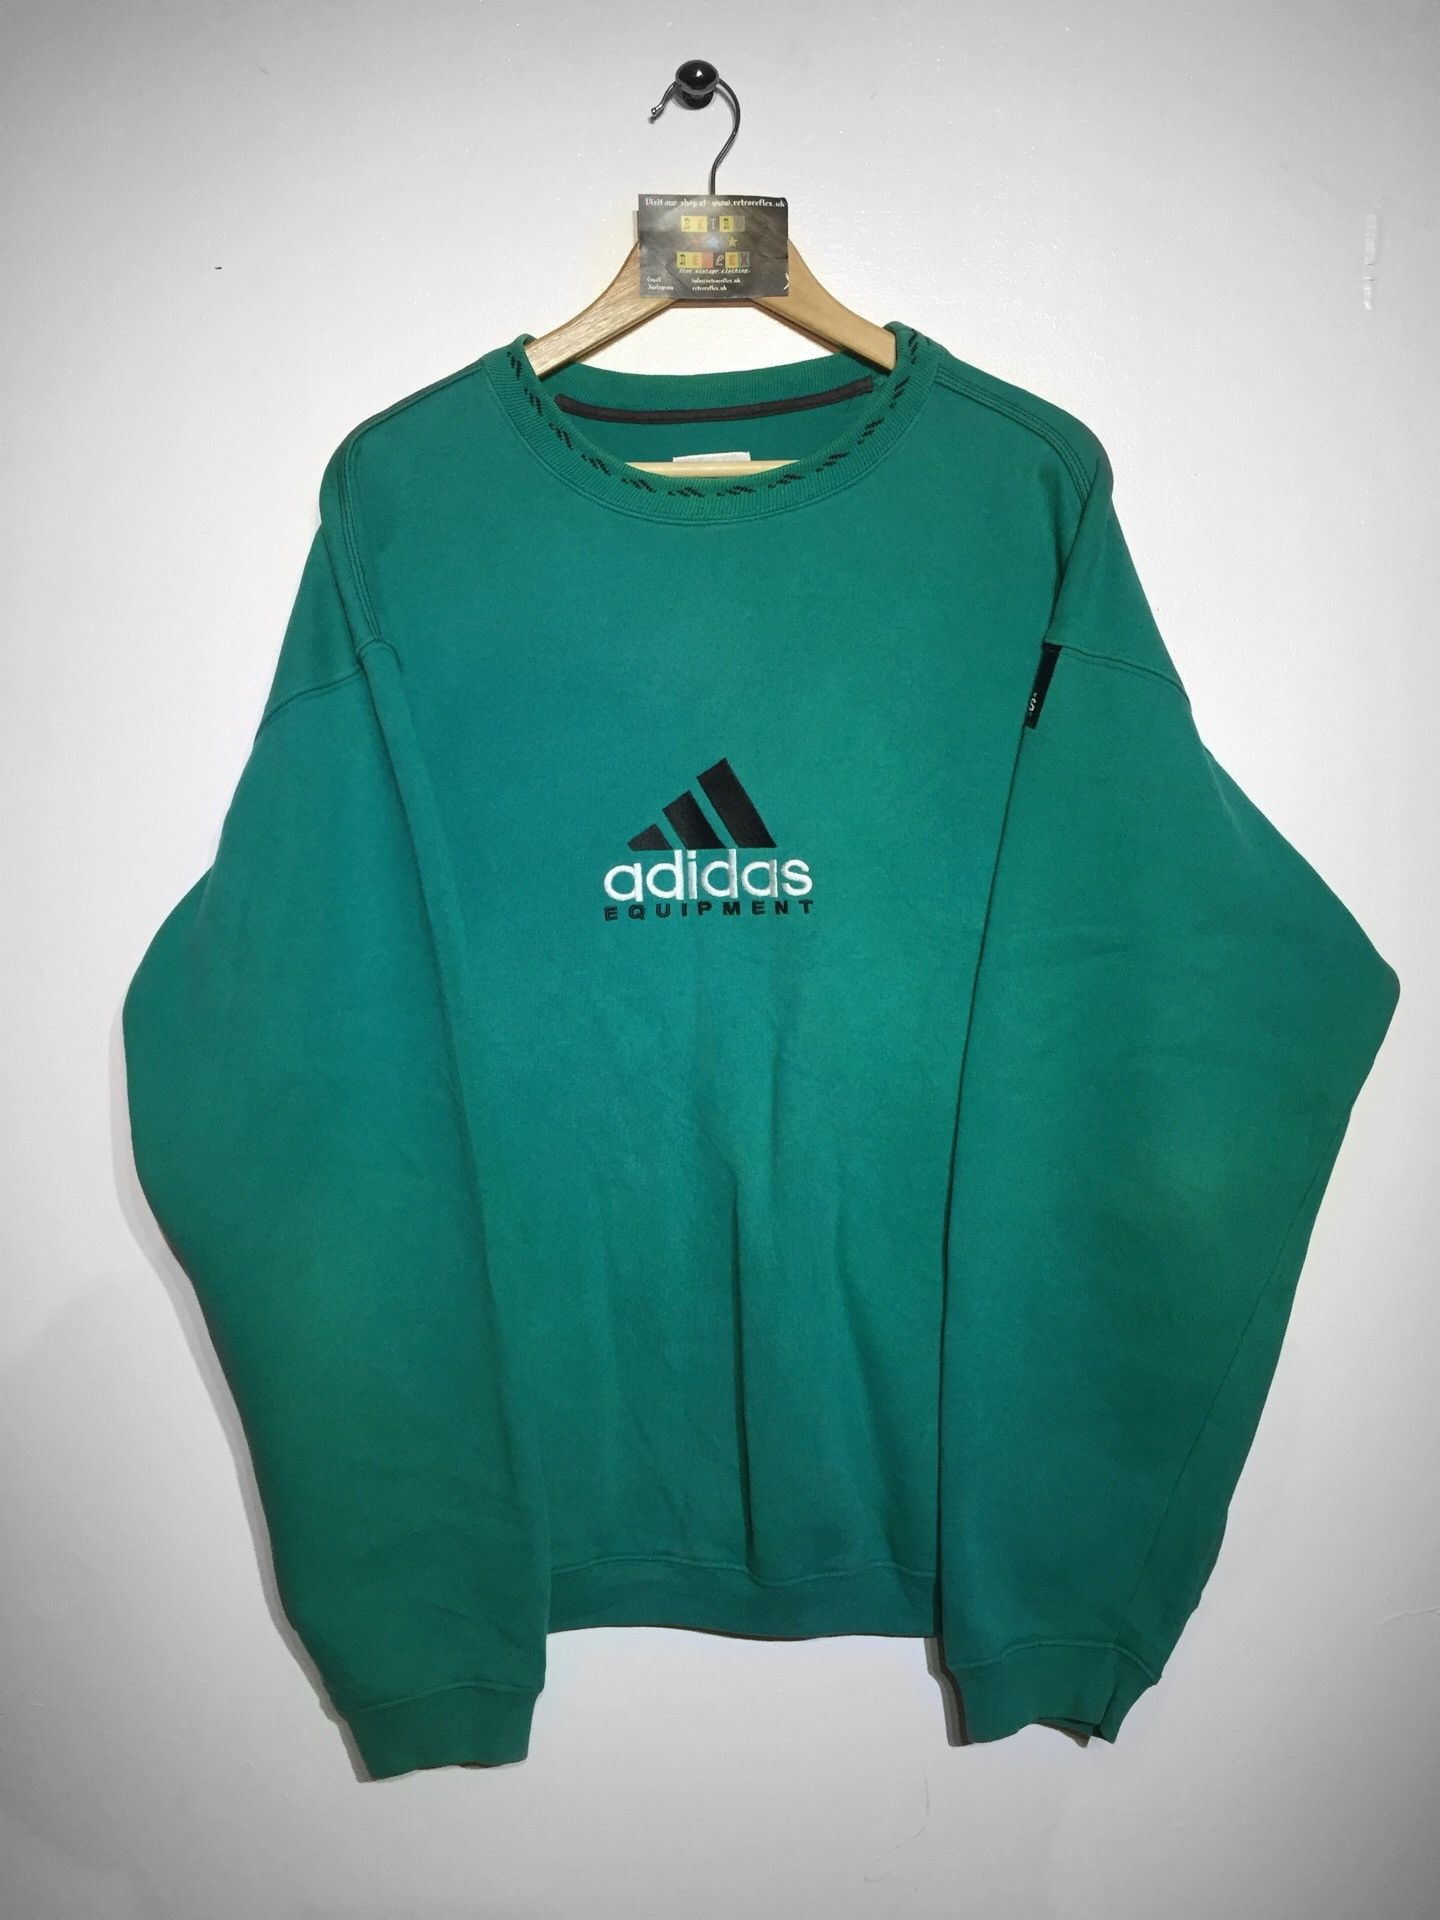 Adidas Equipment Sweatshirt Large Fits Oversized Retro